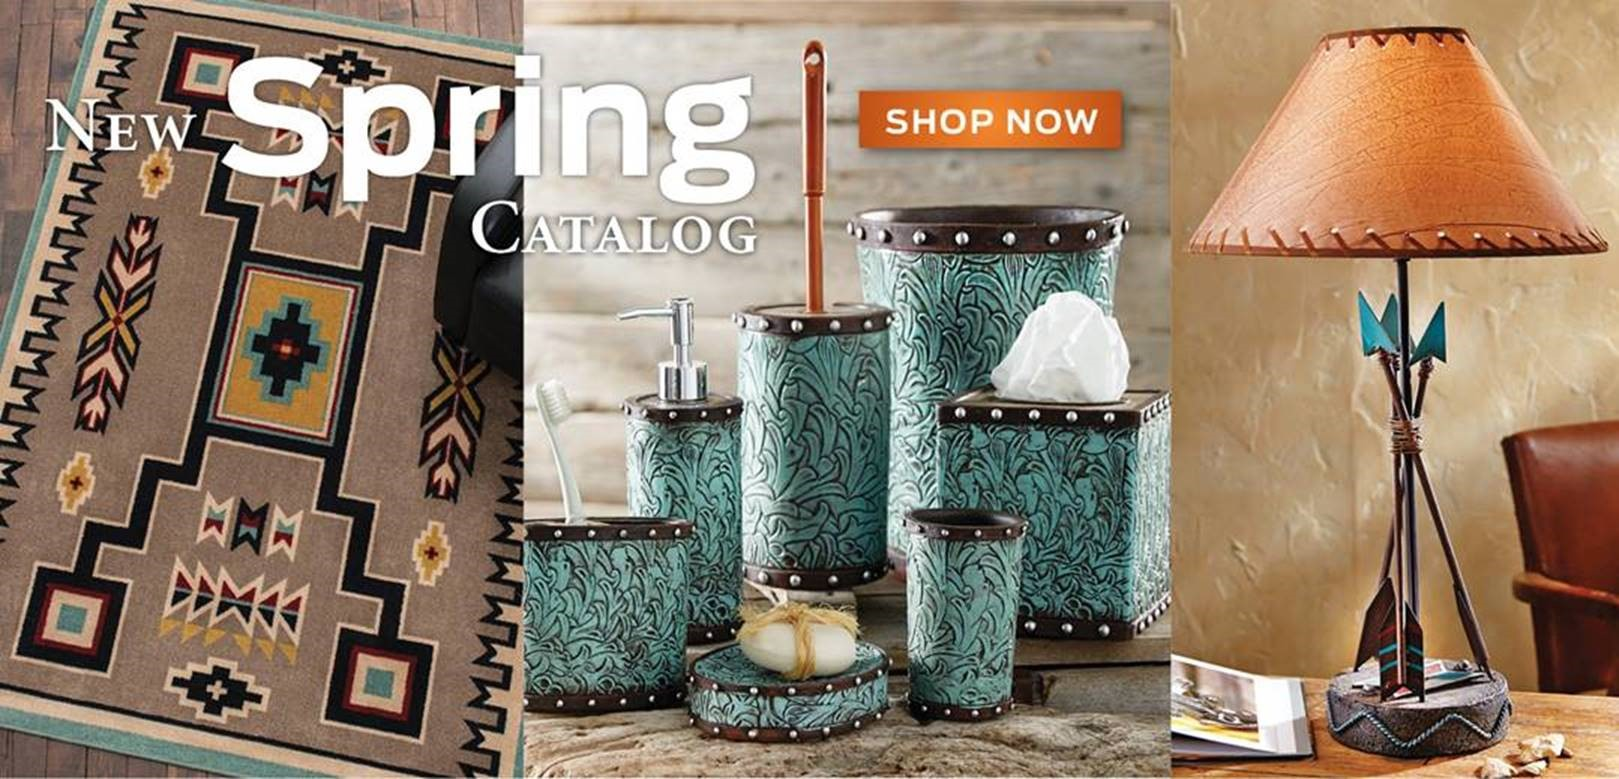 Western Decor - Free Shipping!